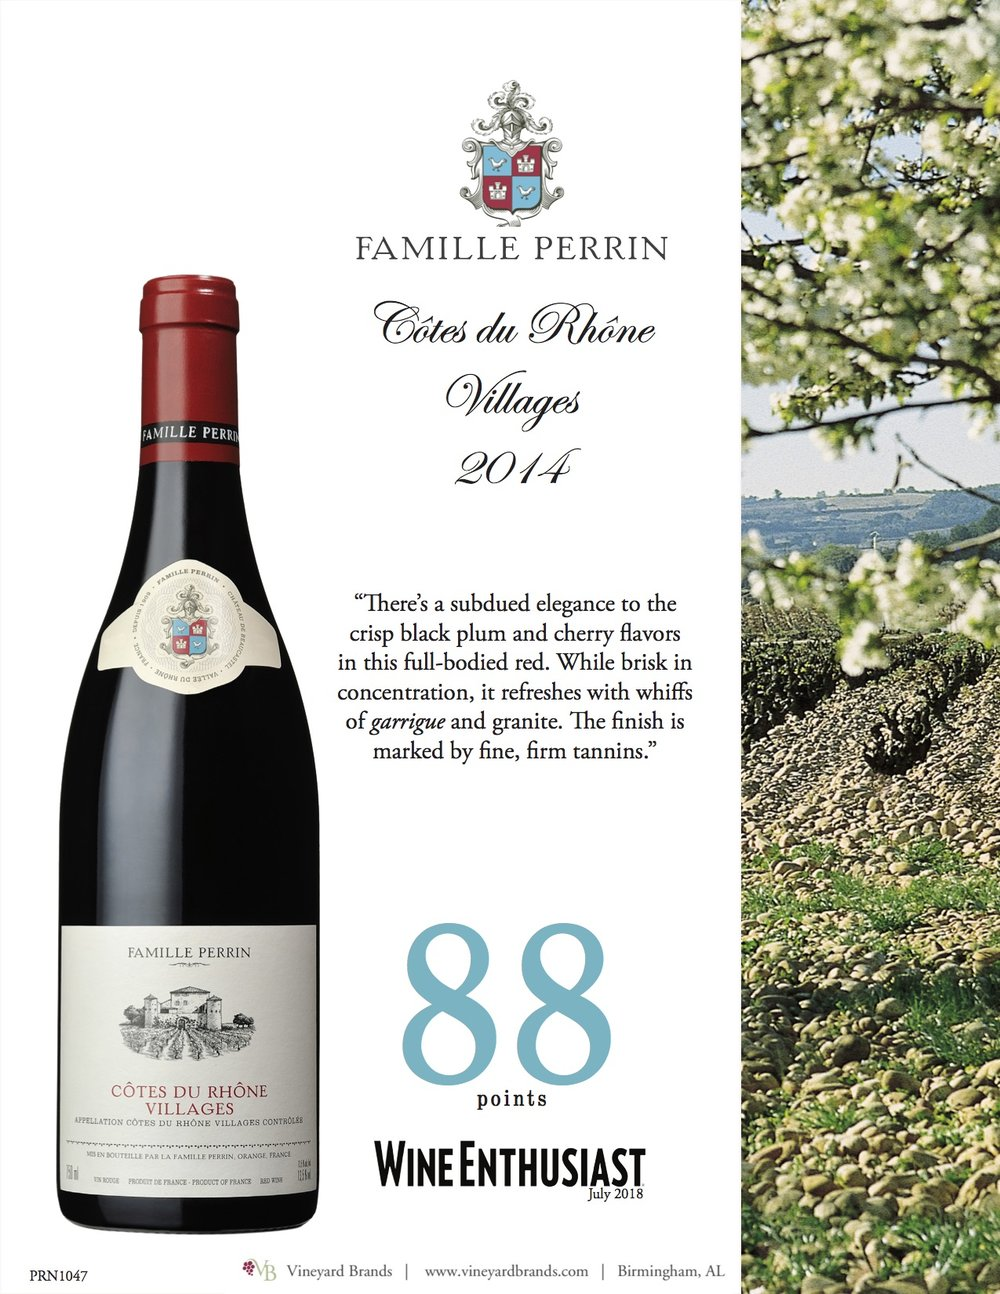 Famille Perrin CDR Villages 2014.jpg